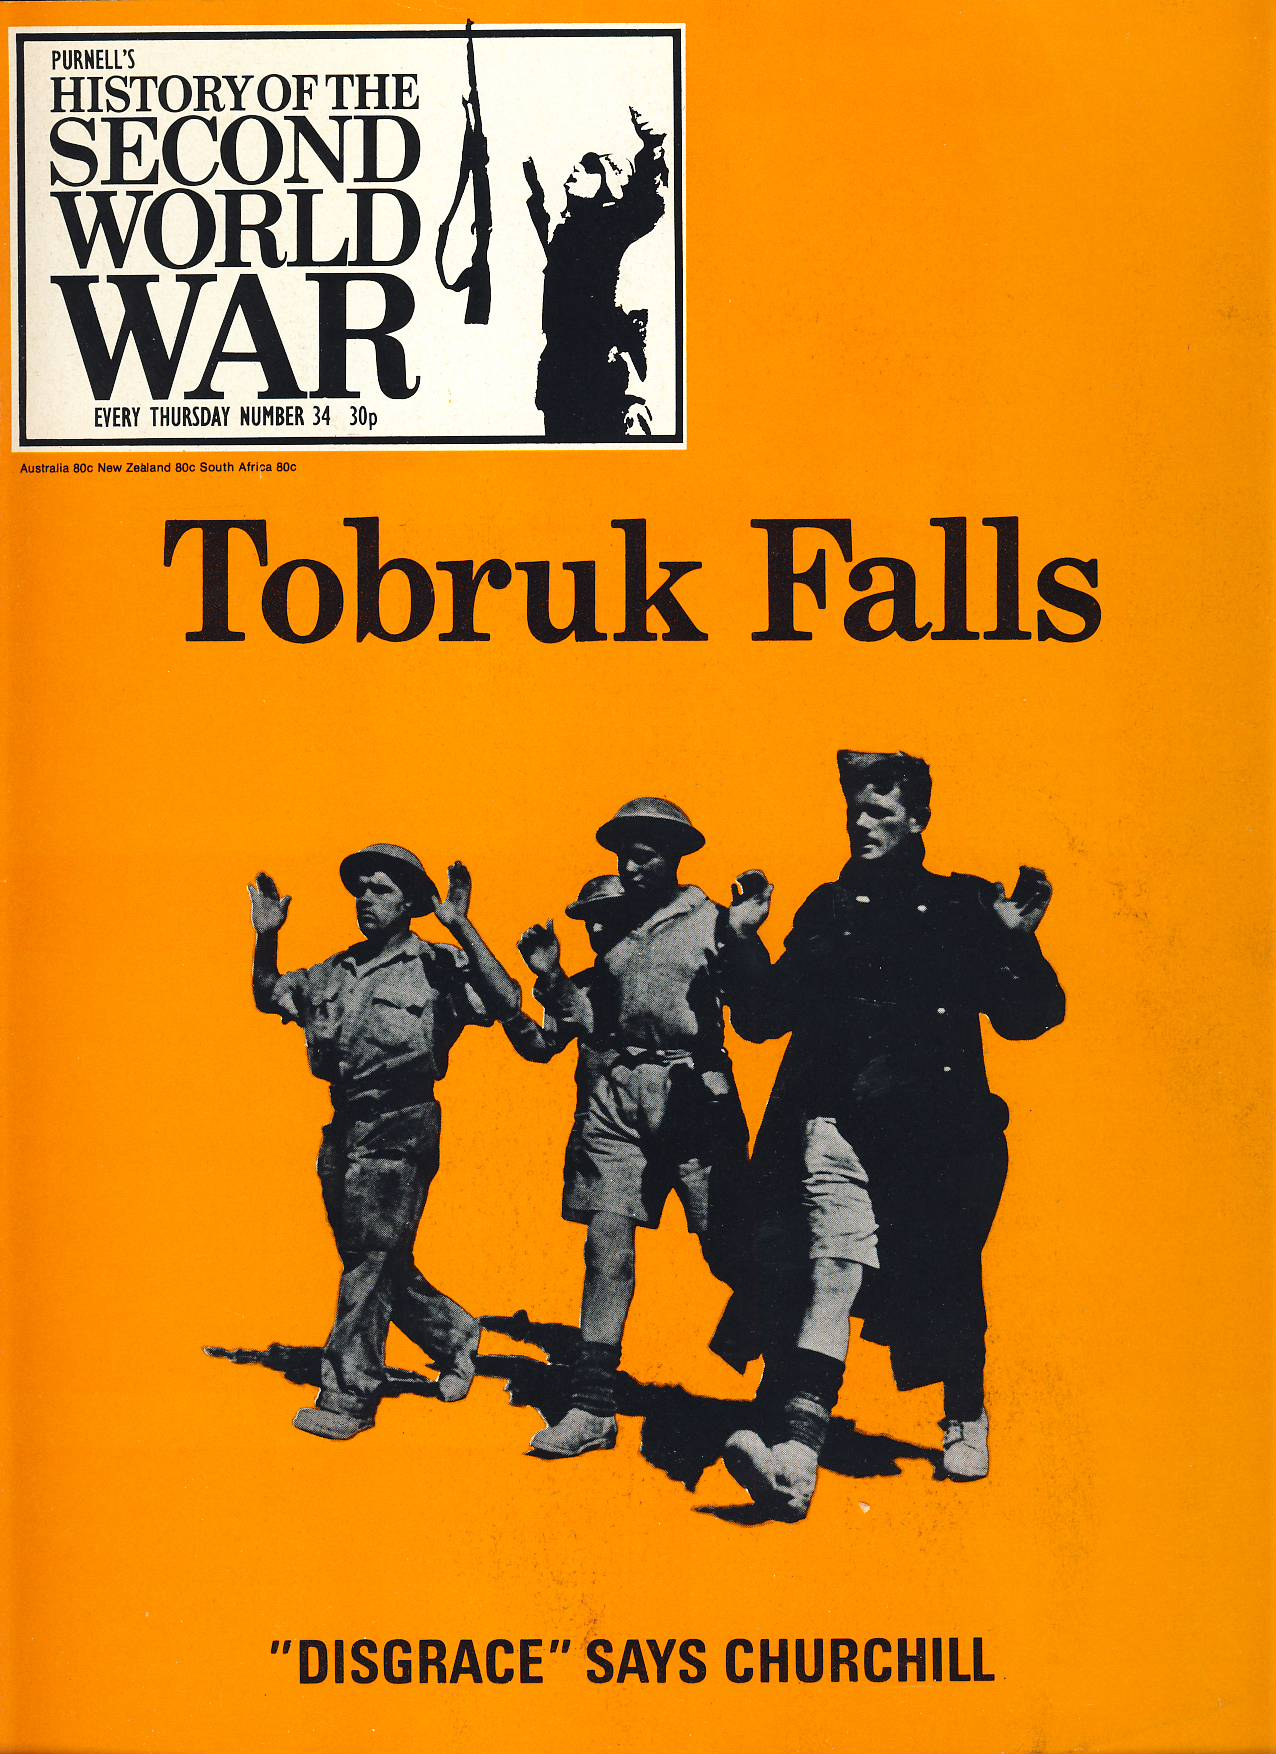 History of the Second World War Magazine #34 Torbruk Falls Disgrace says Churchill A vintage Purnell's weekly magazine in good read condition. Please see larger photo and full description for details.